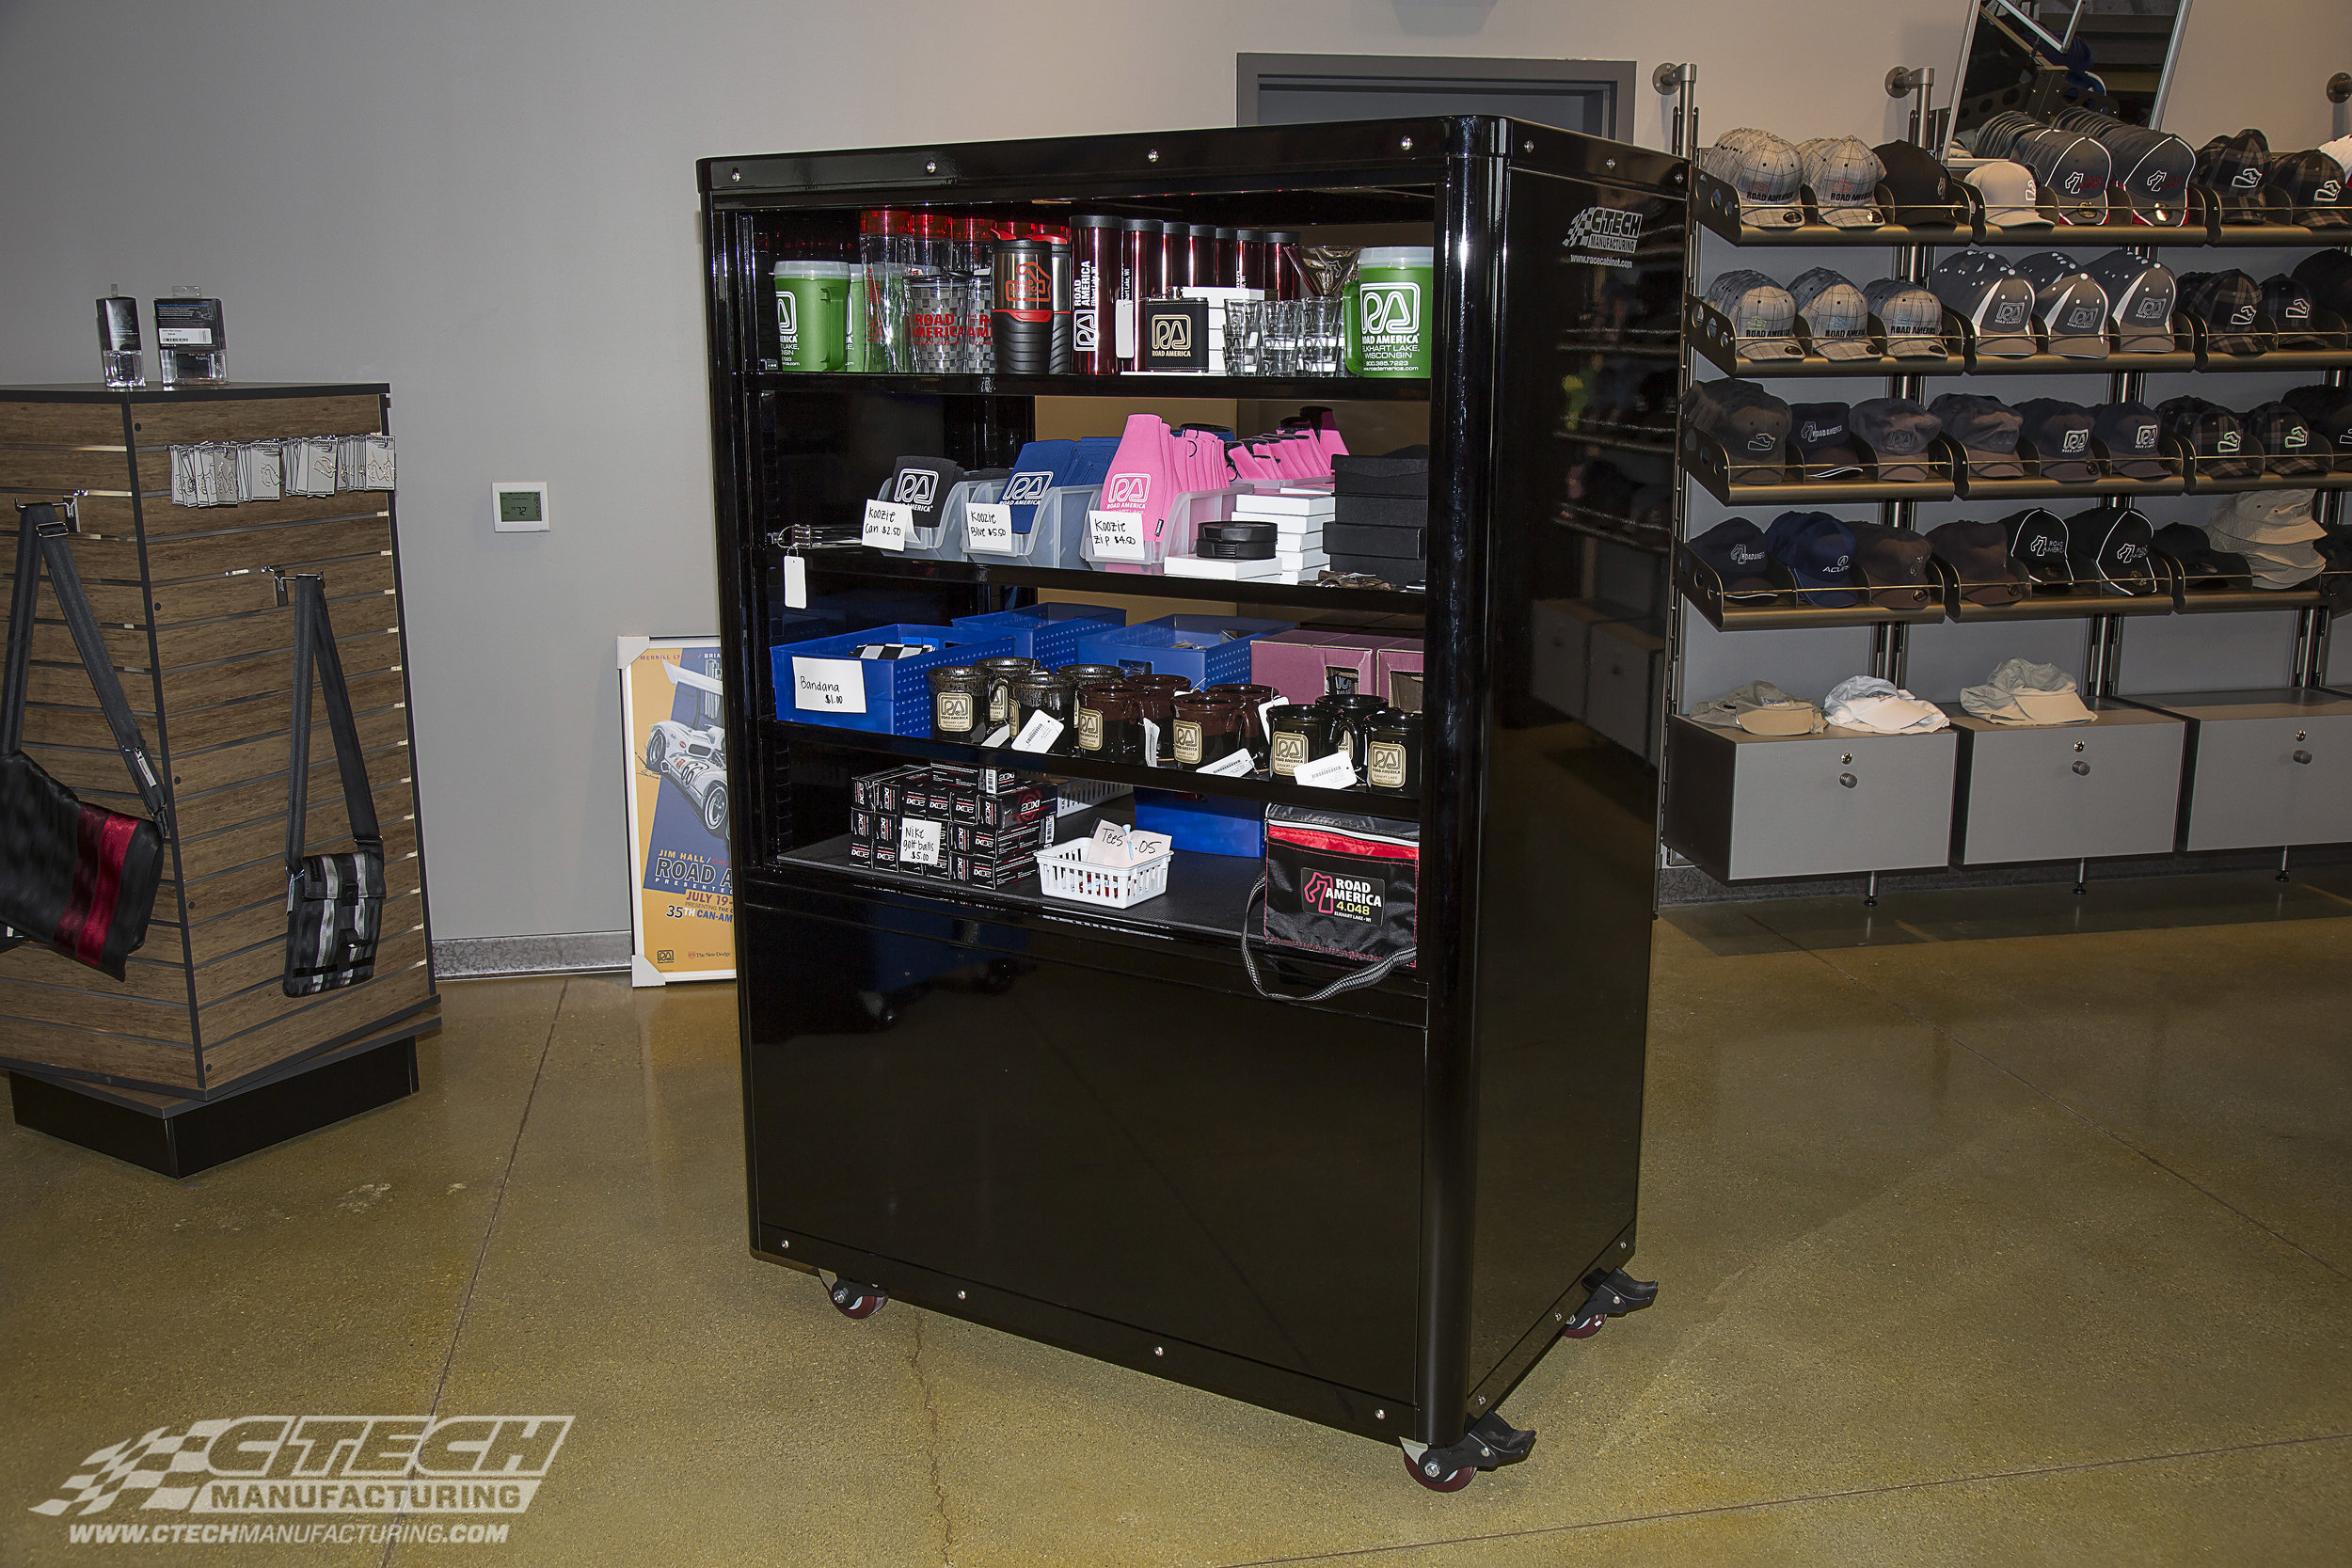 Display carts from CTECH feature Adjust-A-Loc shelves, which are easily adjustable beyond delivery so your retail display and storage unit can adapt quickly to showcase the newest product.